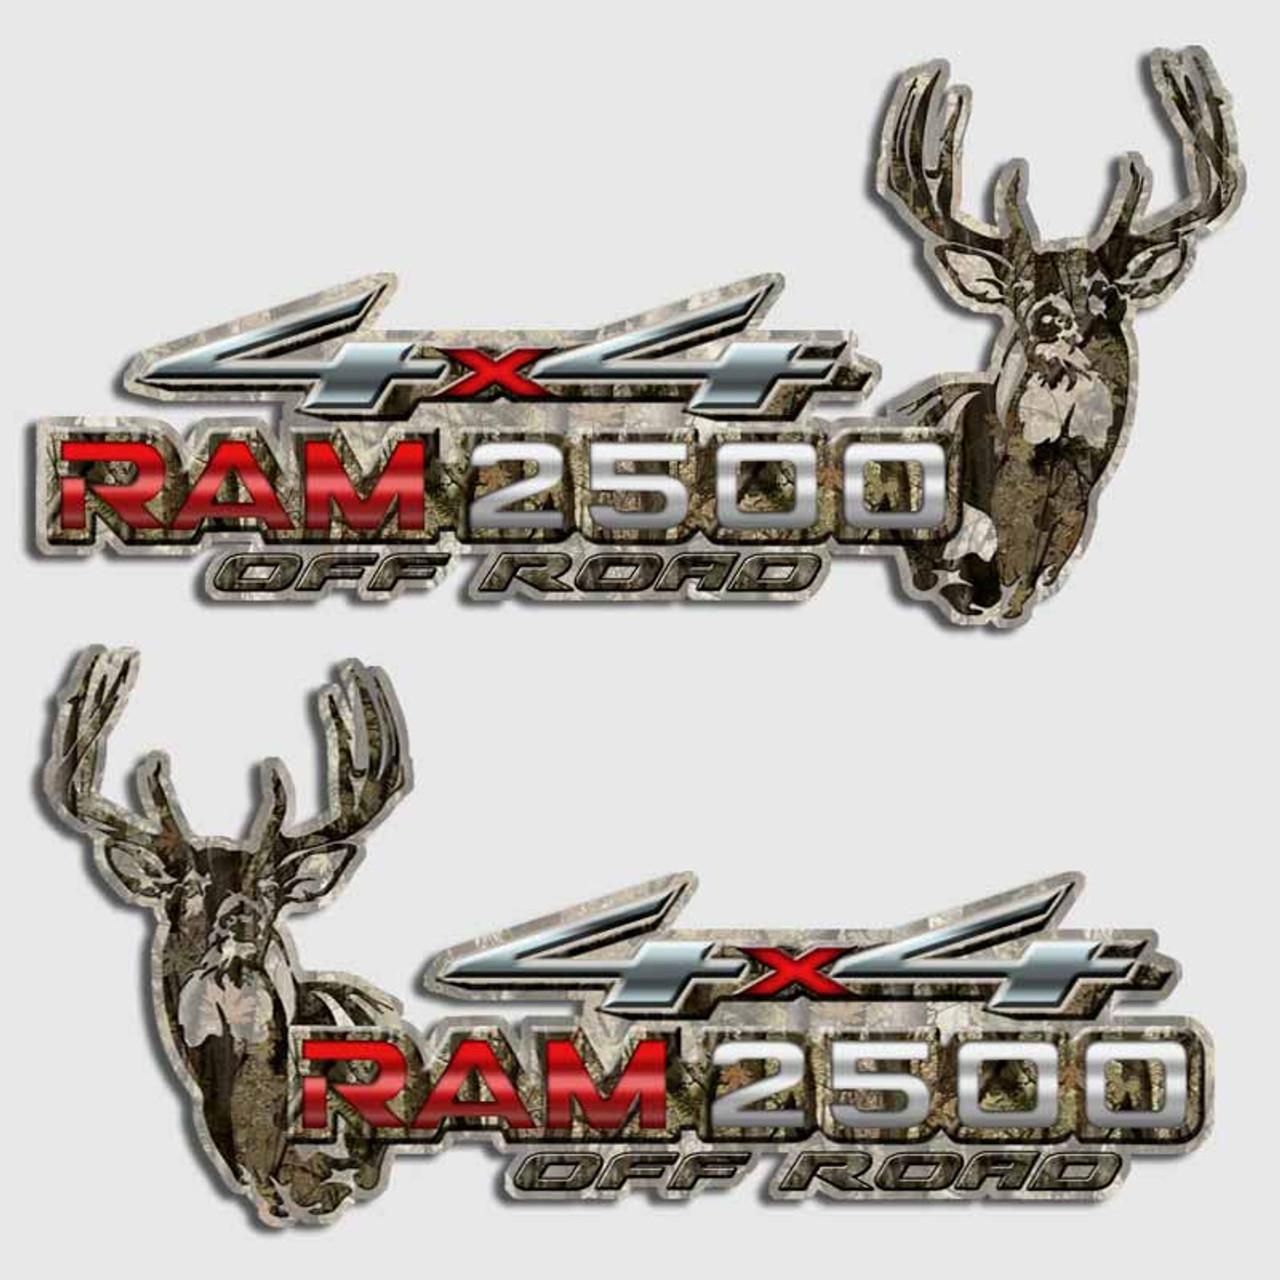 Dodge Ram 2500 Camouflage Hunting 4x4 Truck Decals